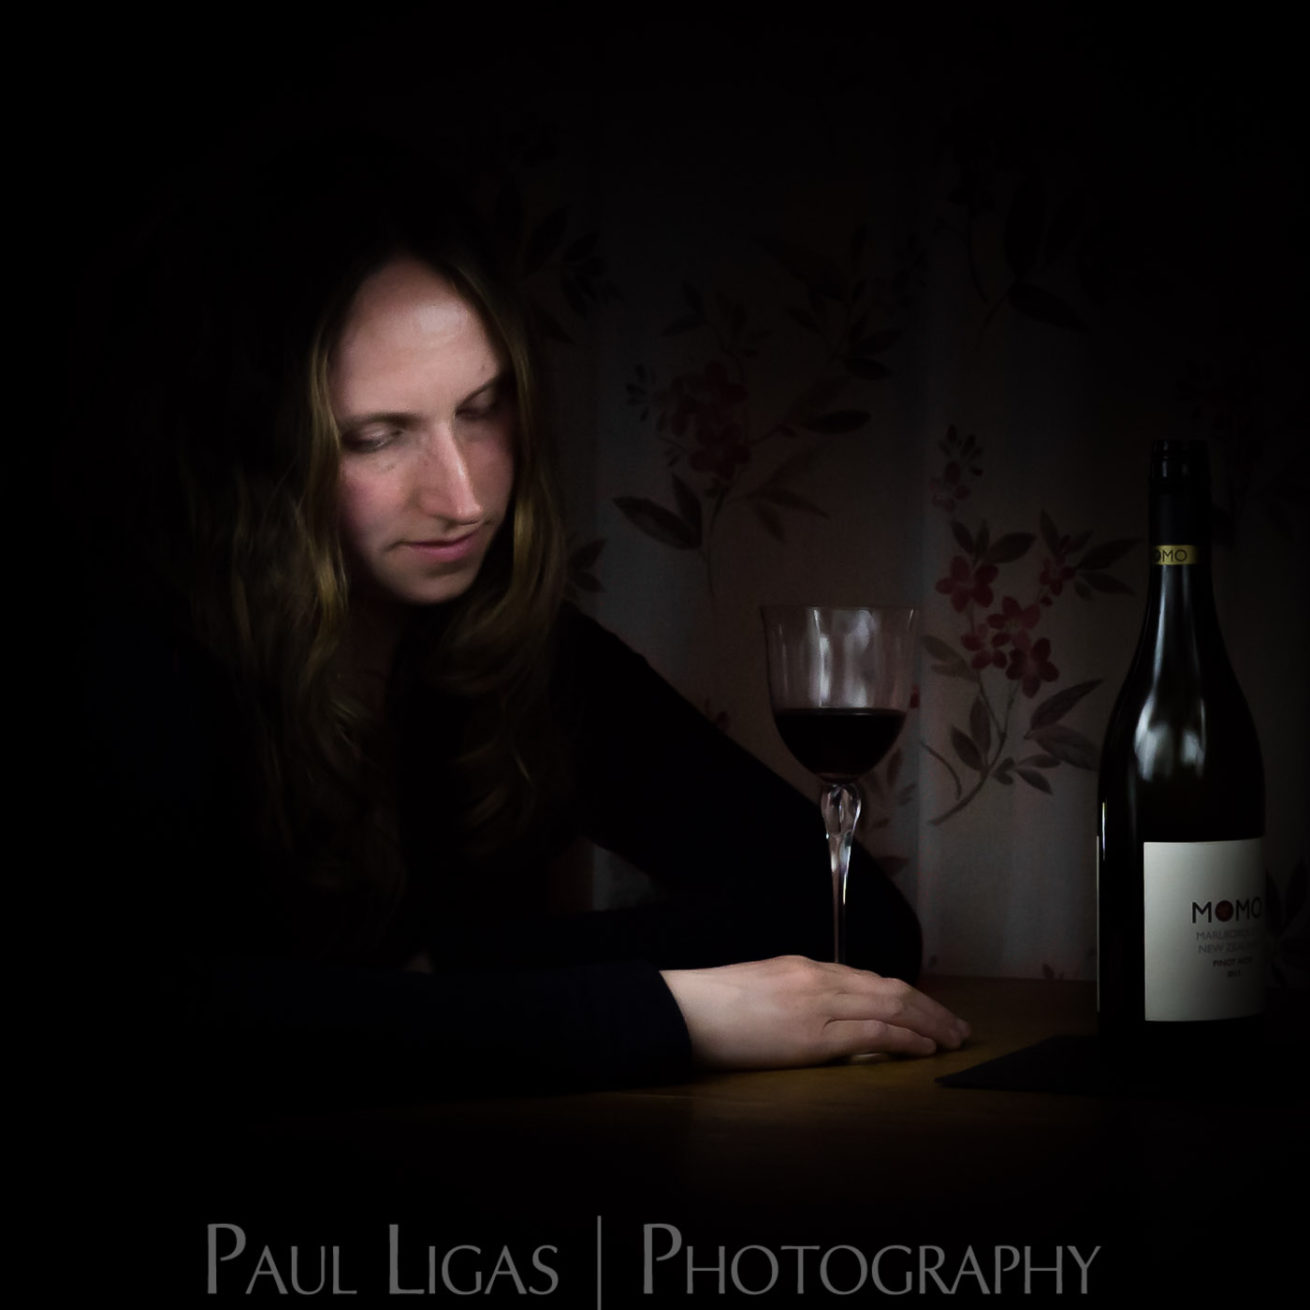 Light Painting Portrait photographer Herefordshire photography 6399